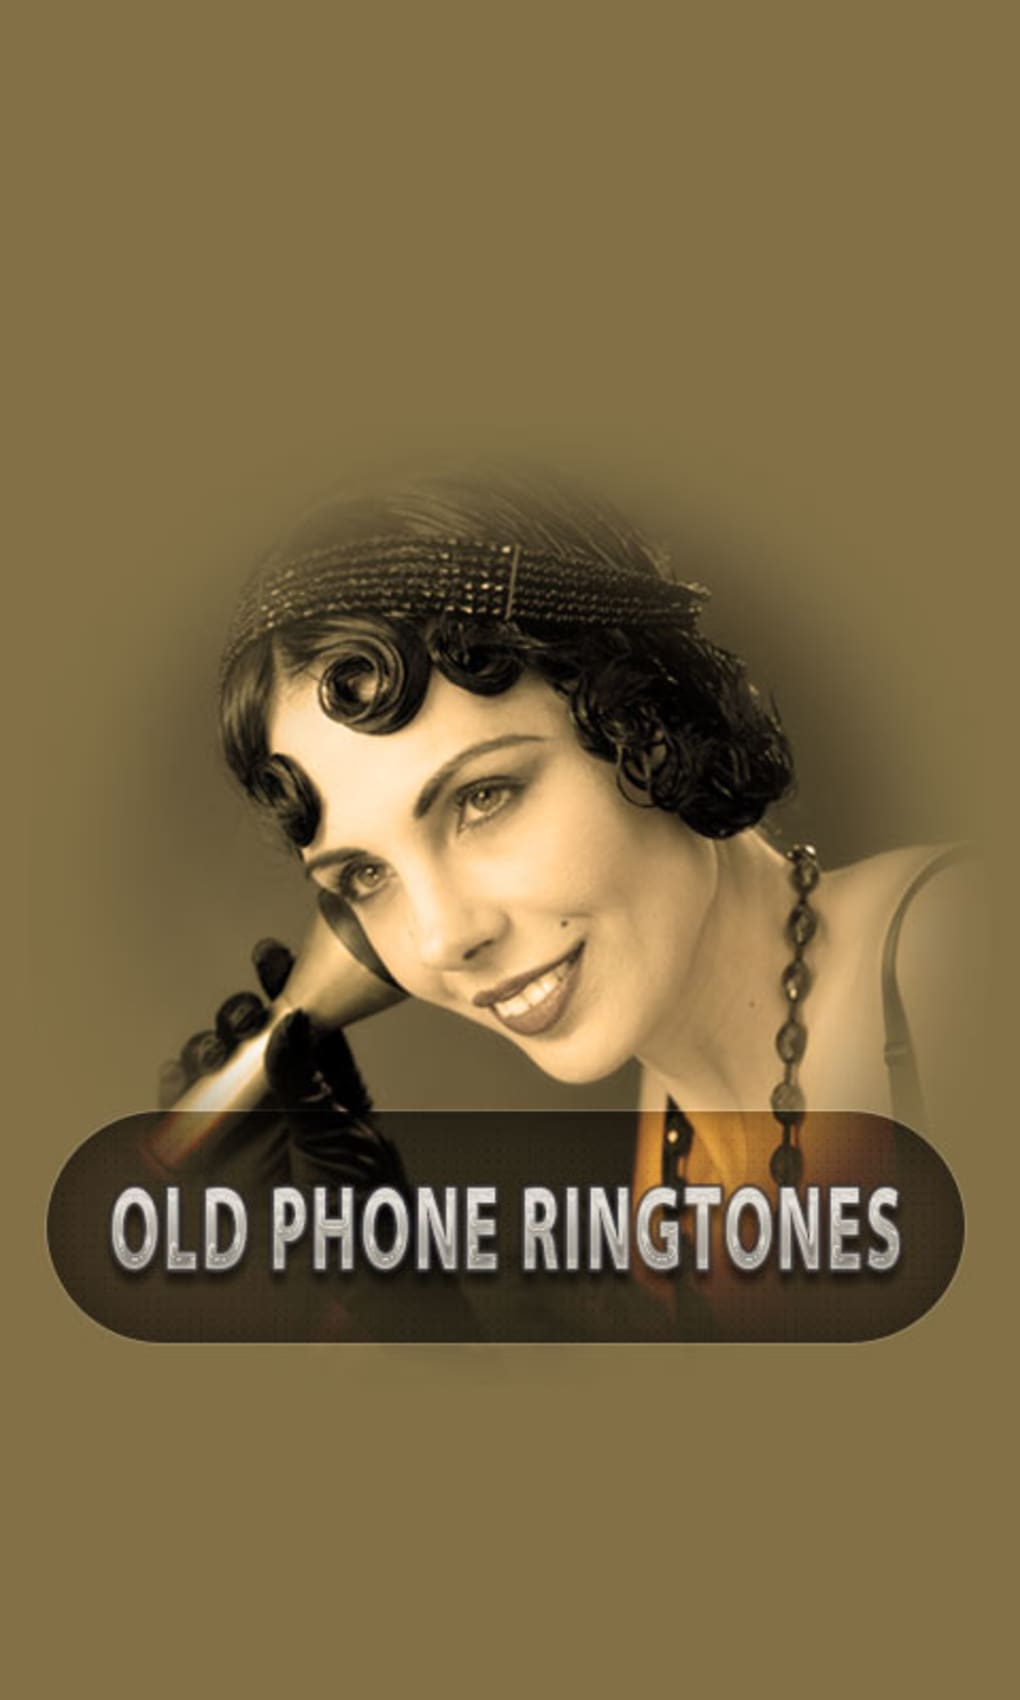 Old Telephone Ringtones for Android - Download